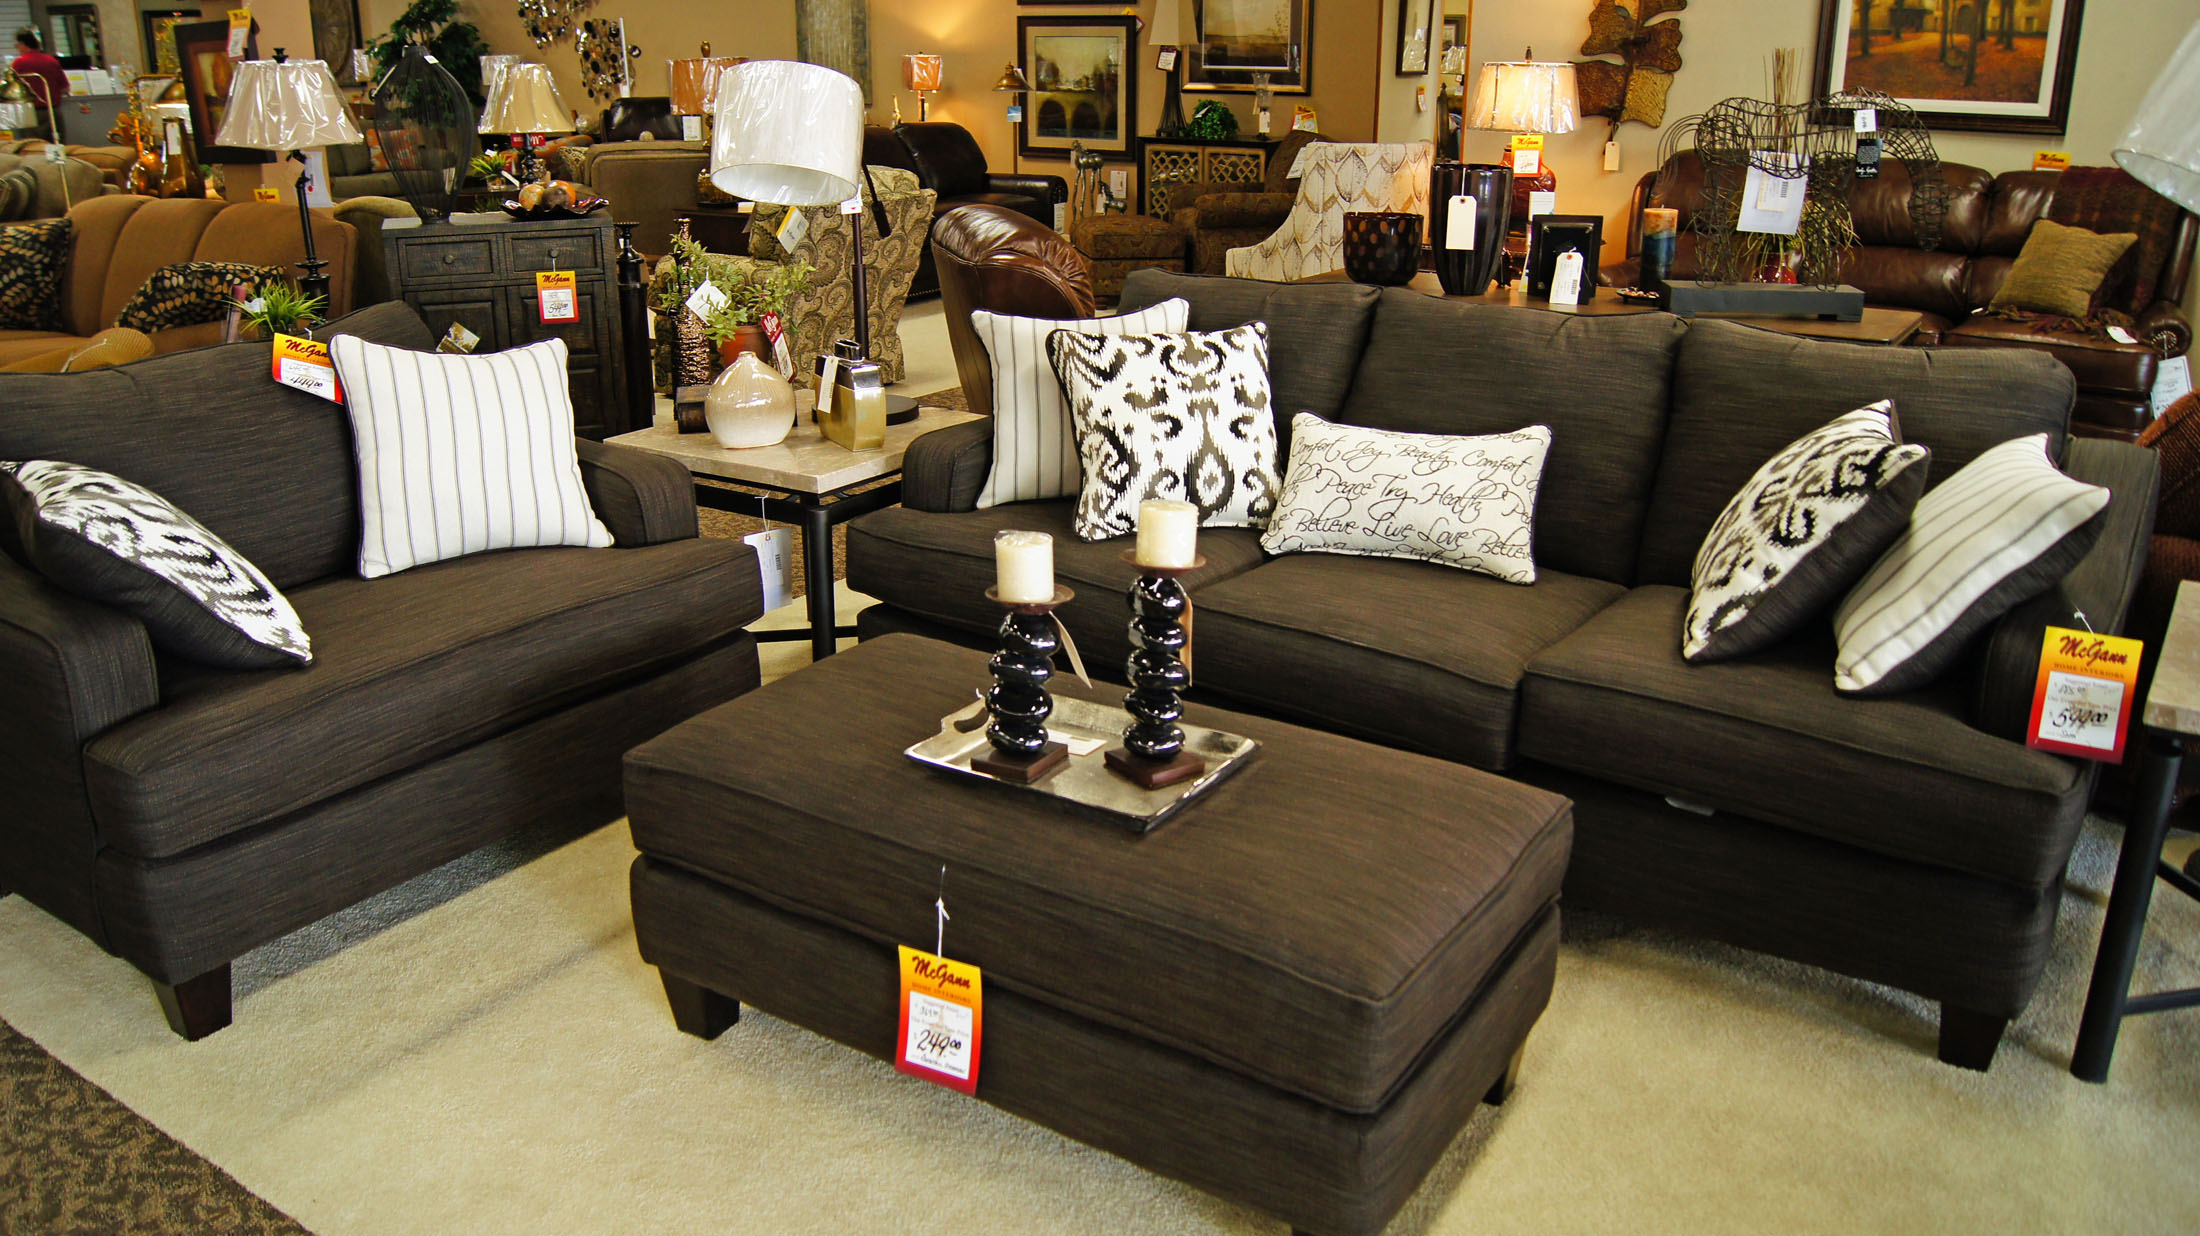 Find Me A Furniture Store Mcgann Furniture Home Store Of Baraboo Wisconsin Wisconsin